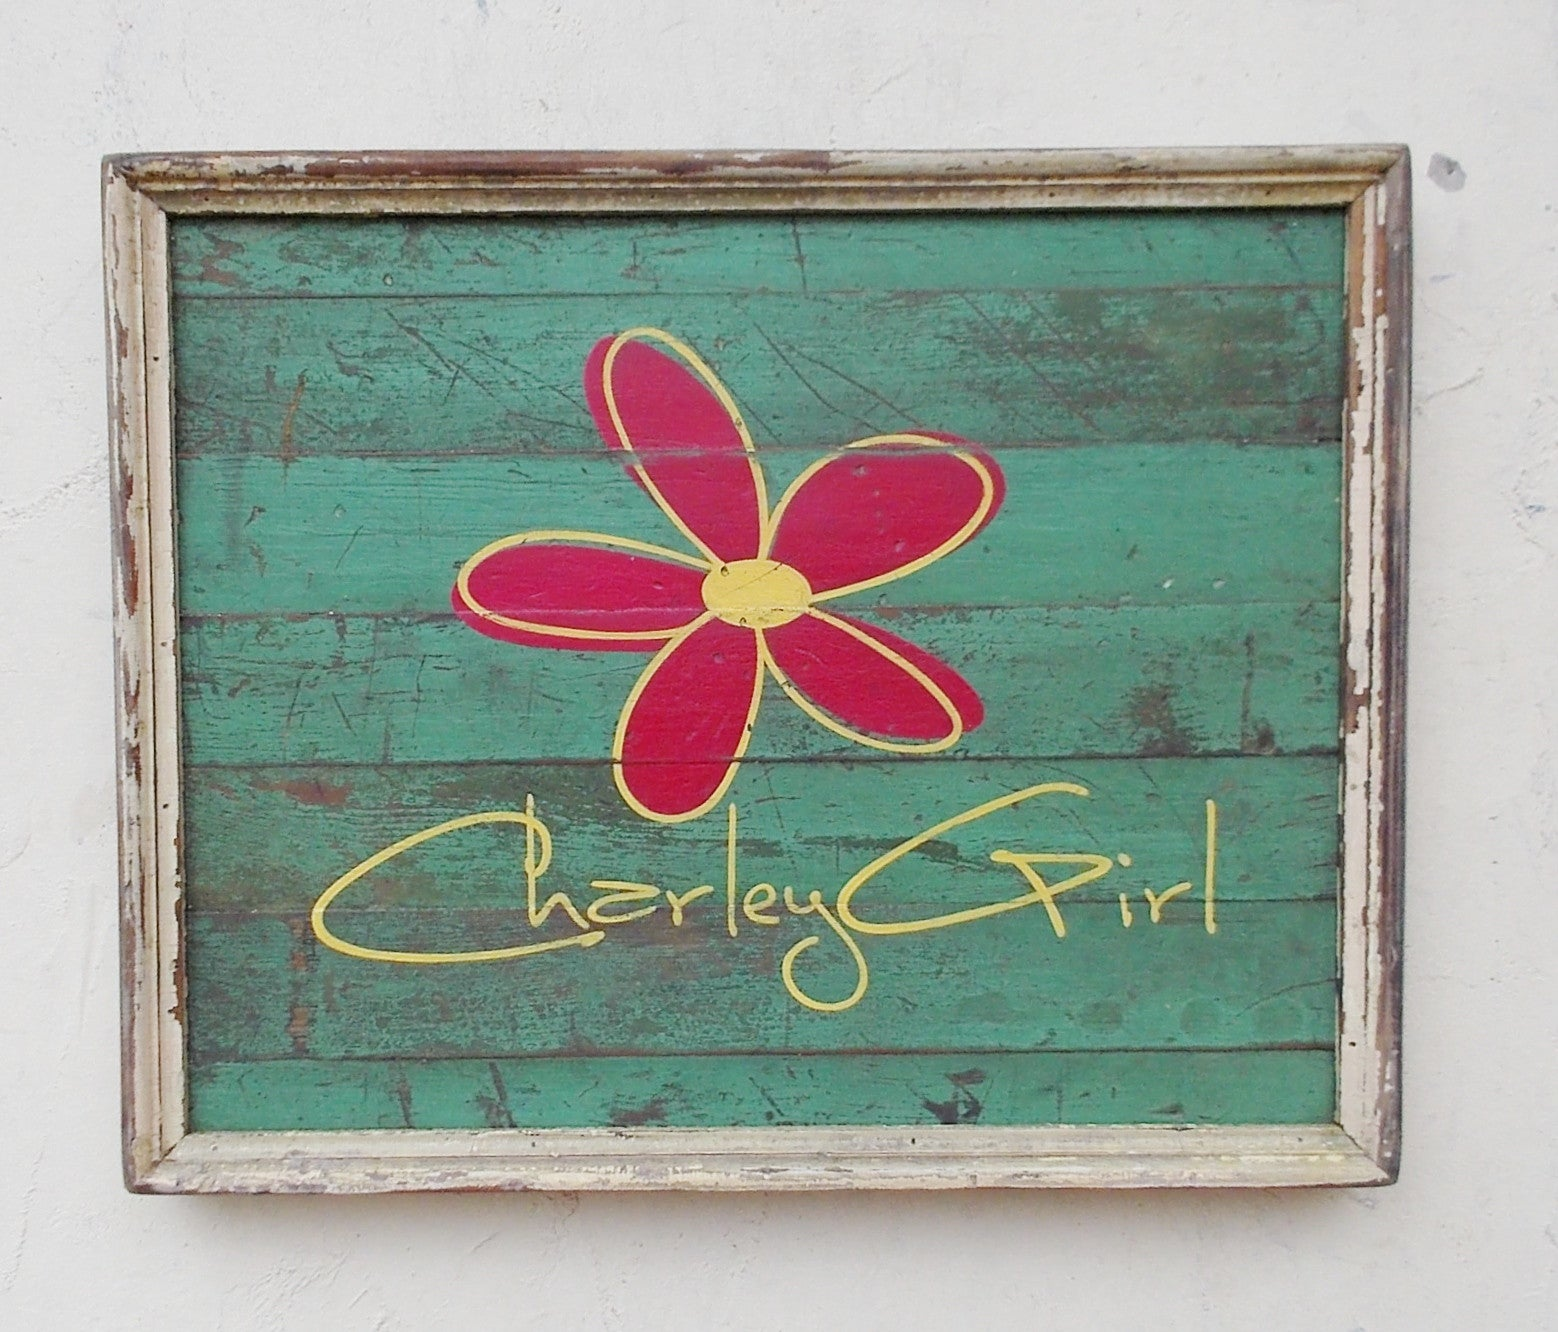 Charley Girl Retail Sign